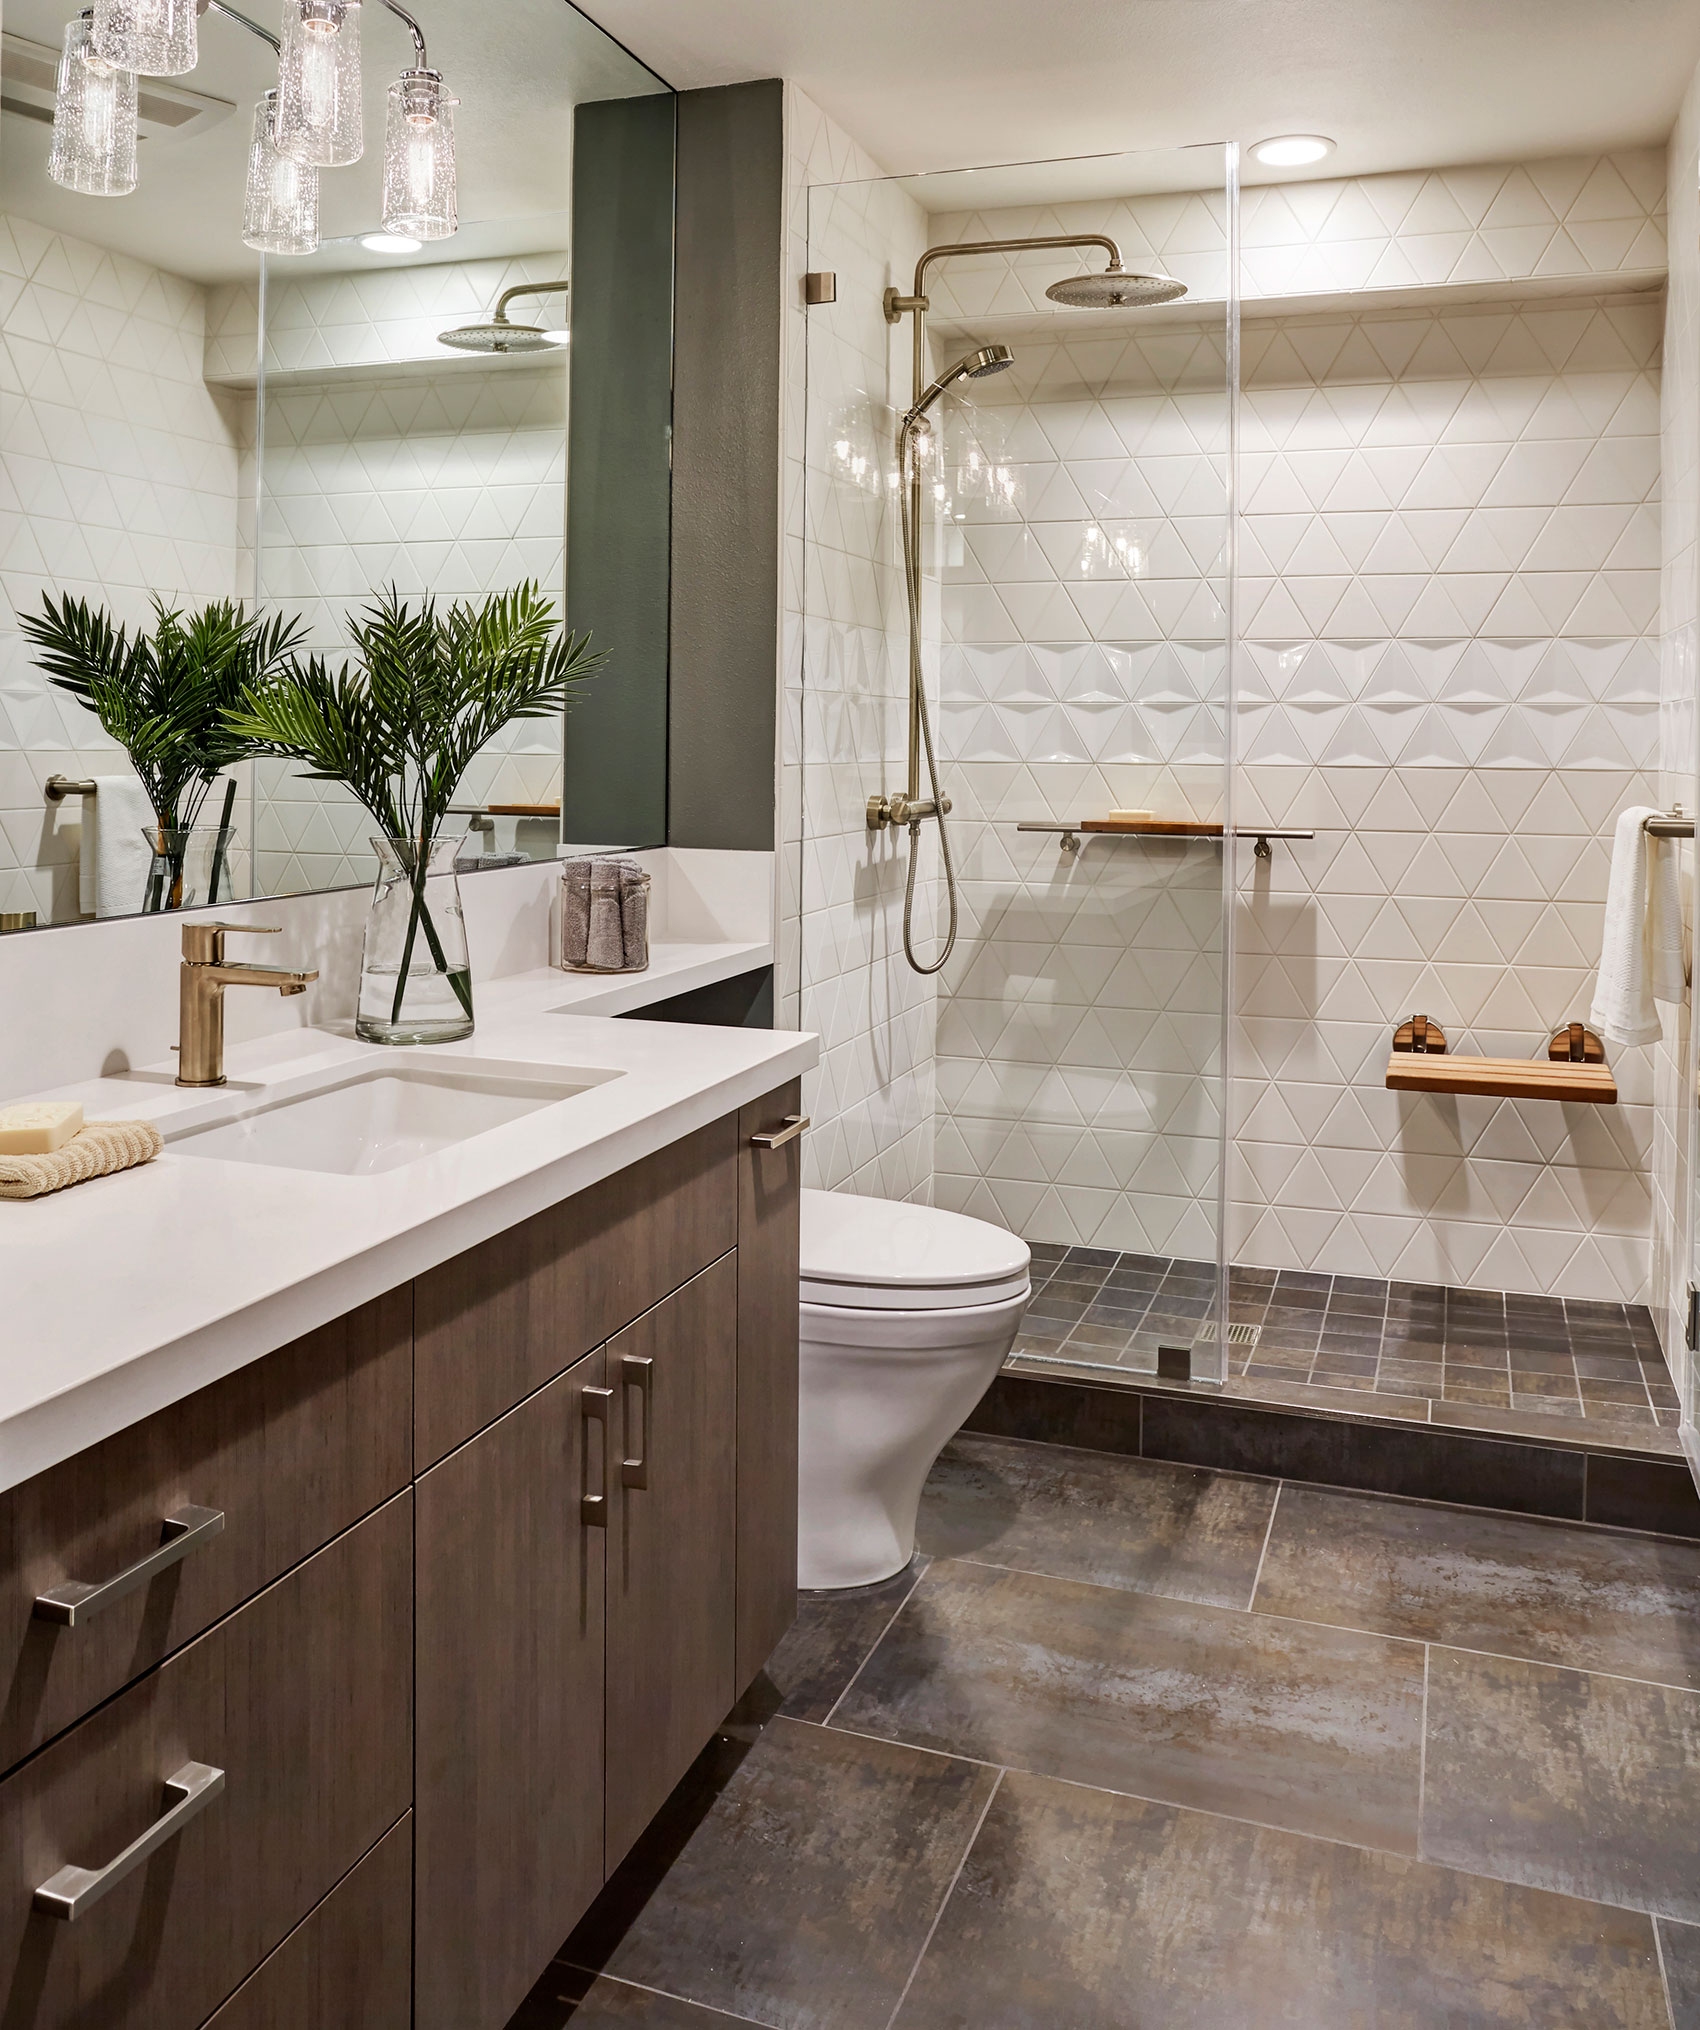 Upscale Bathroom Remodeling Trends East Bay California - Geometric Shapes and Balance - Emeryville Condo Remodel - Custom Kitchens by John Wilkins